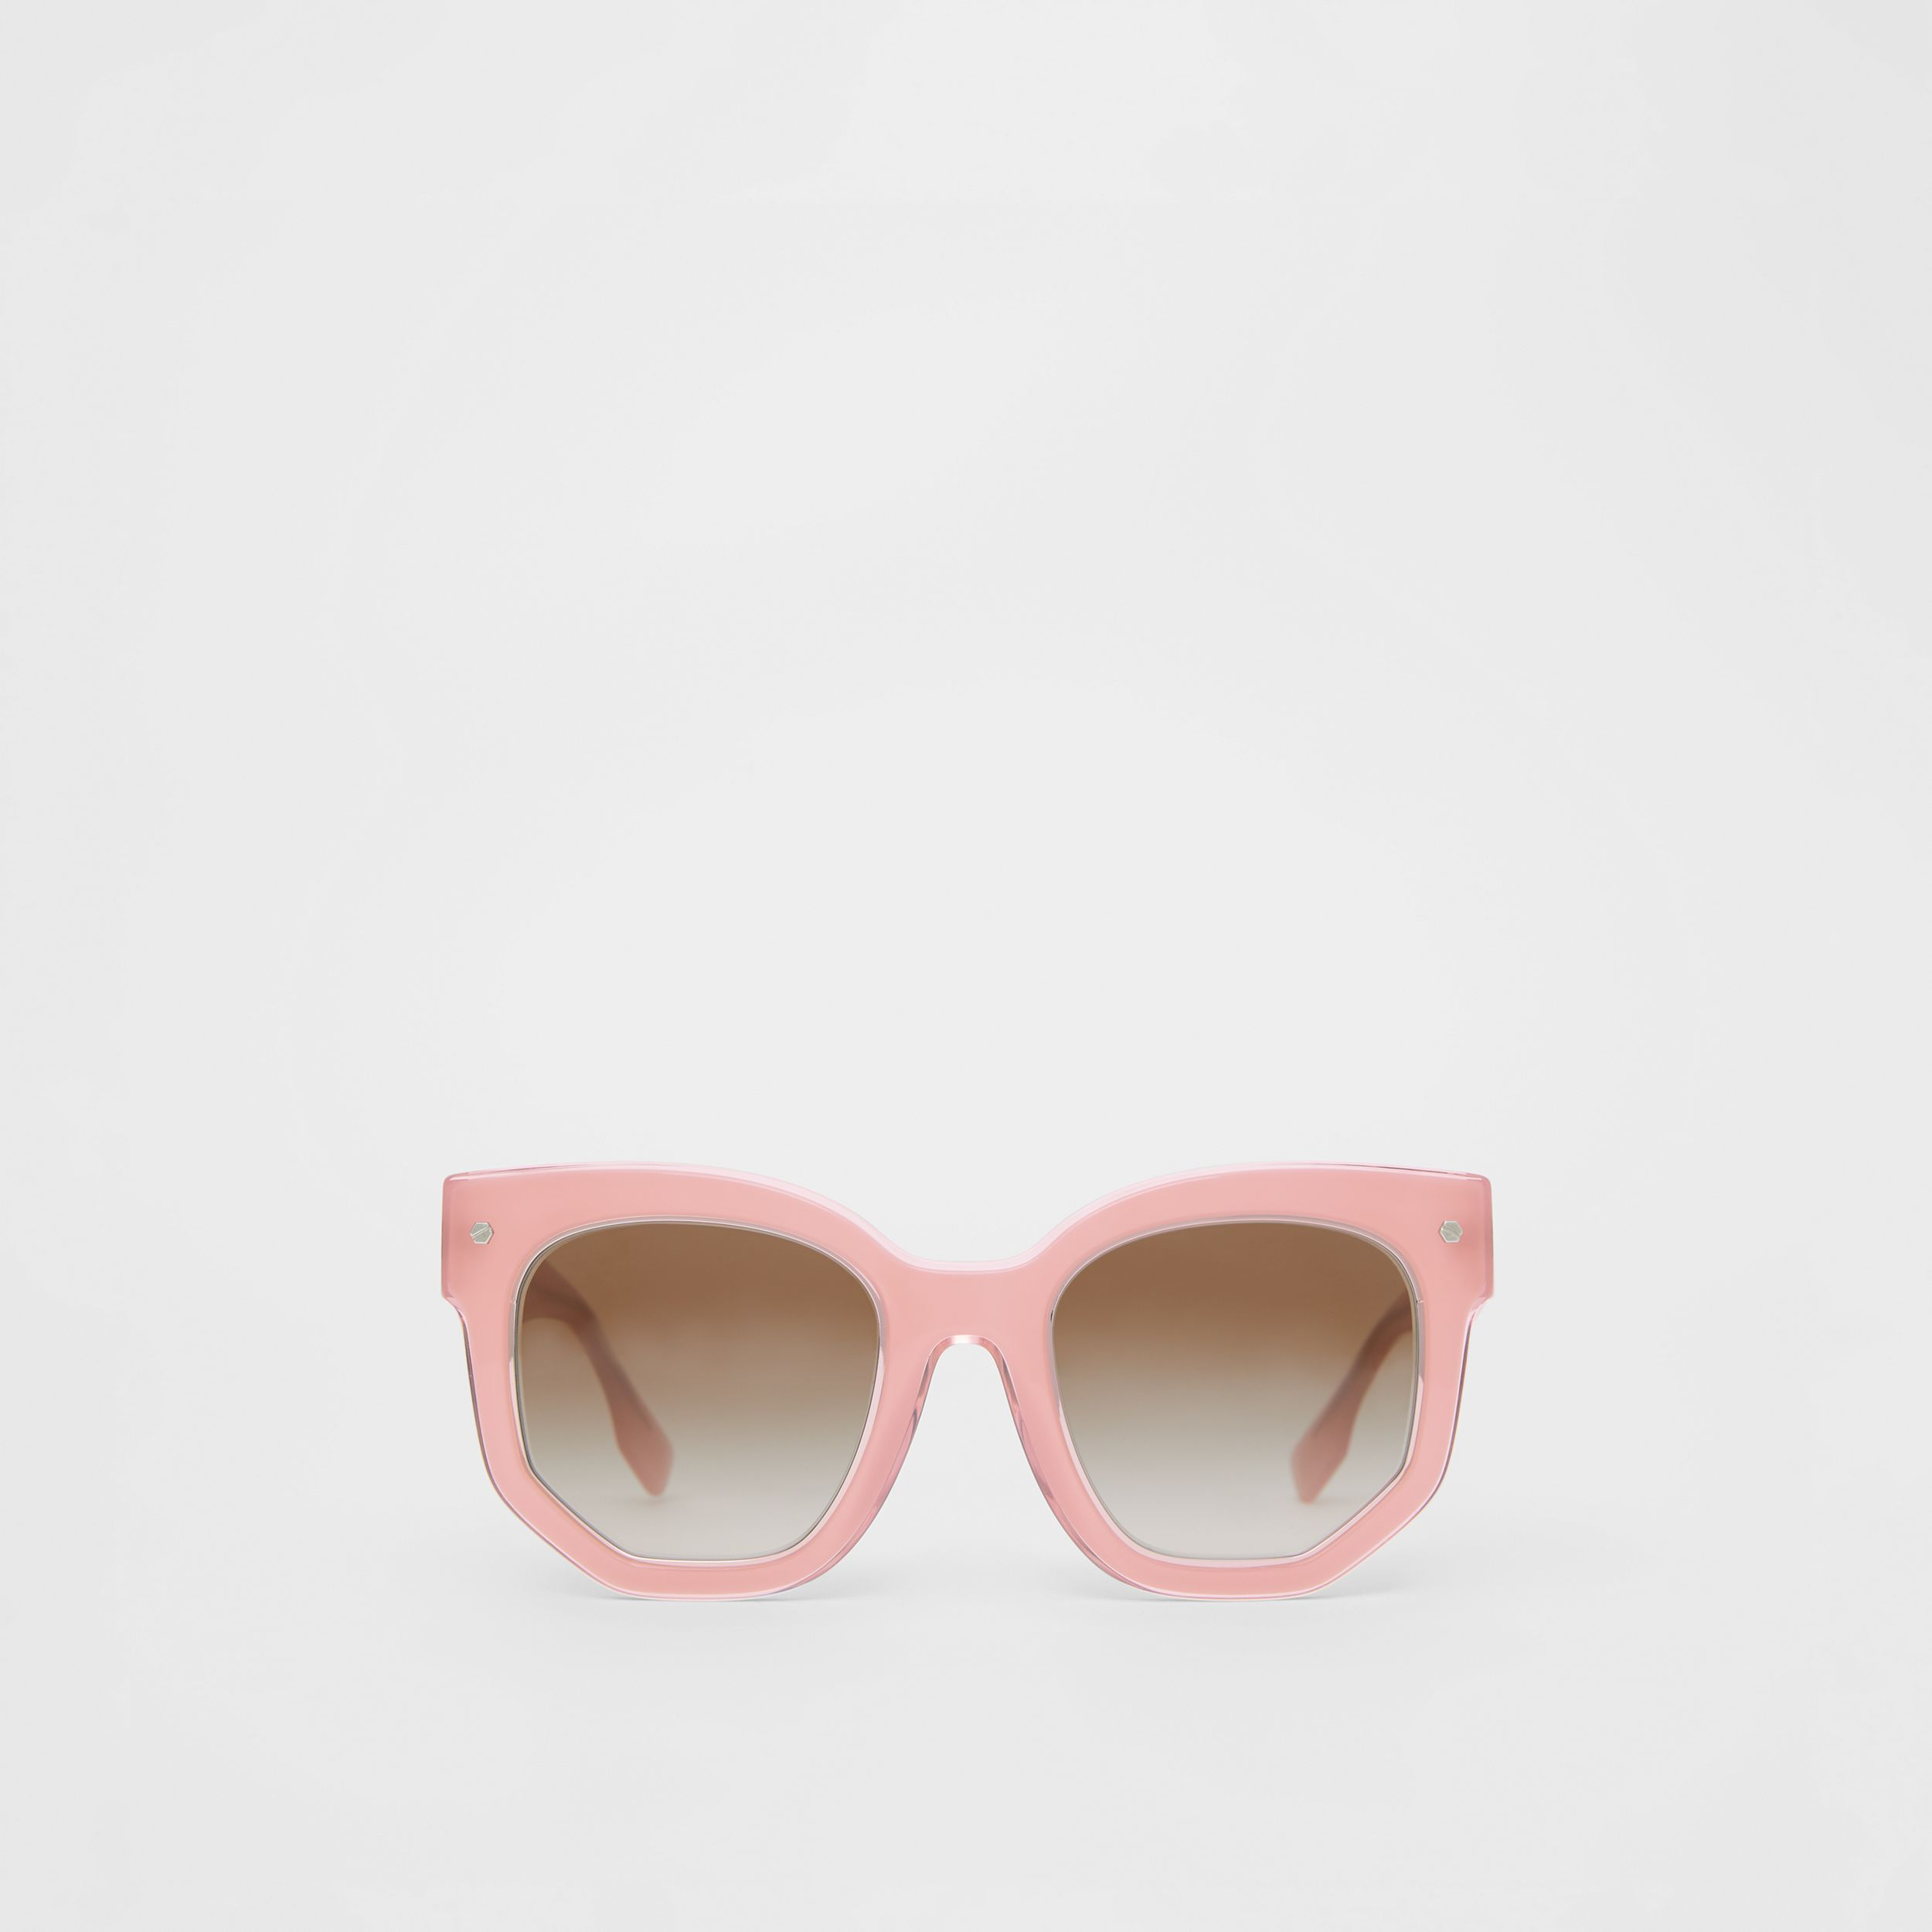 Geometric Frame Sunglasses in Pink - Women | Burberry Canada - 1